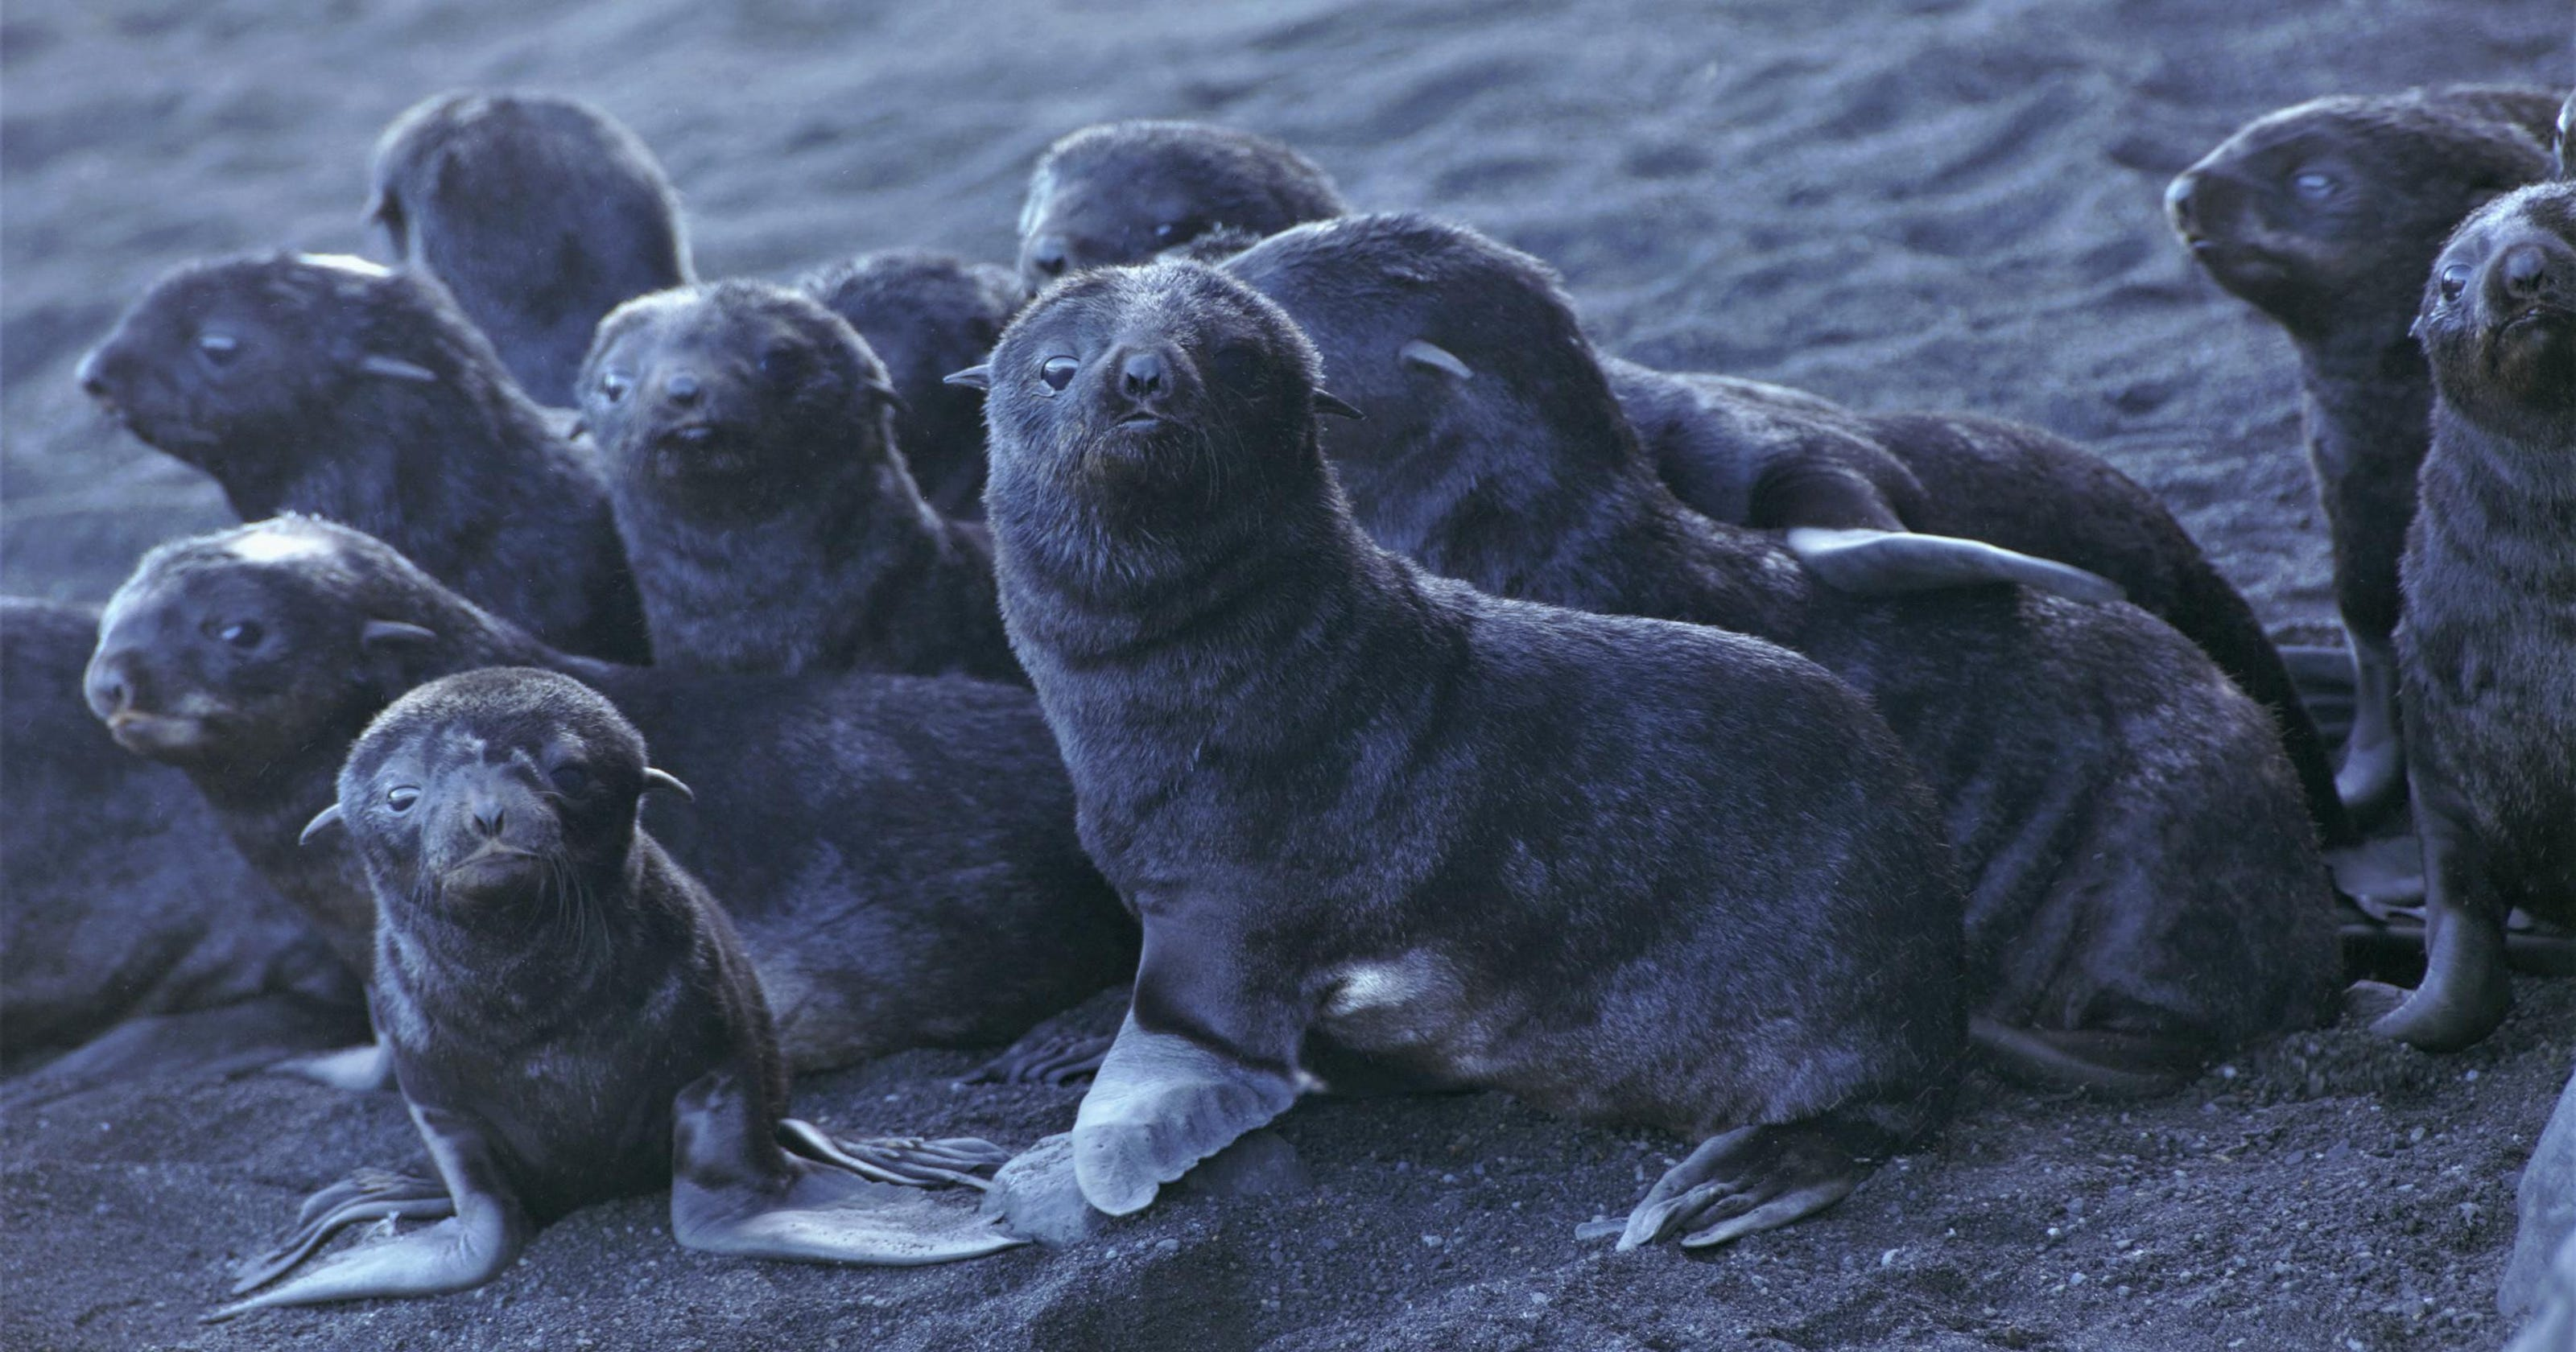 Fur seal pups, big balloon fest, runaway bull: News from around our 50 states